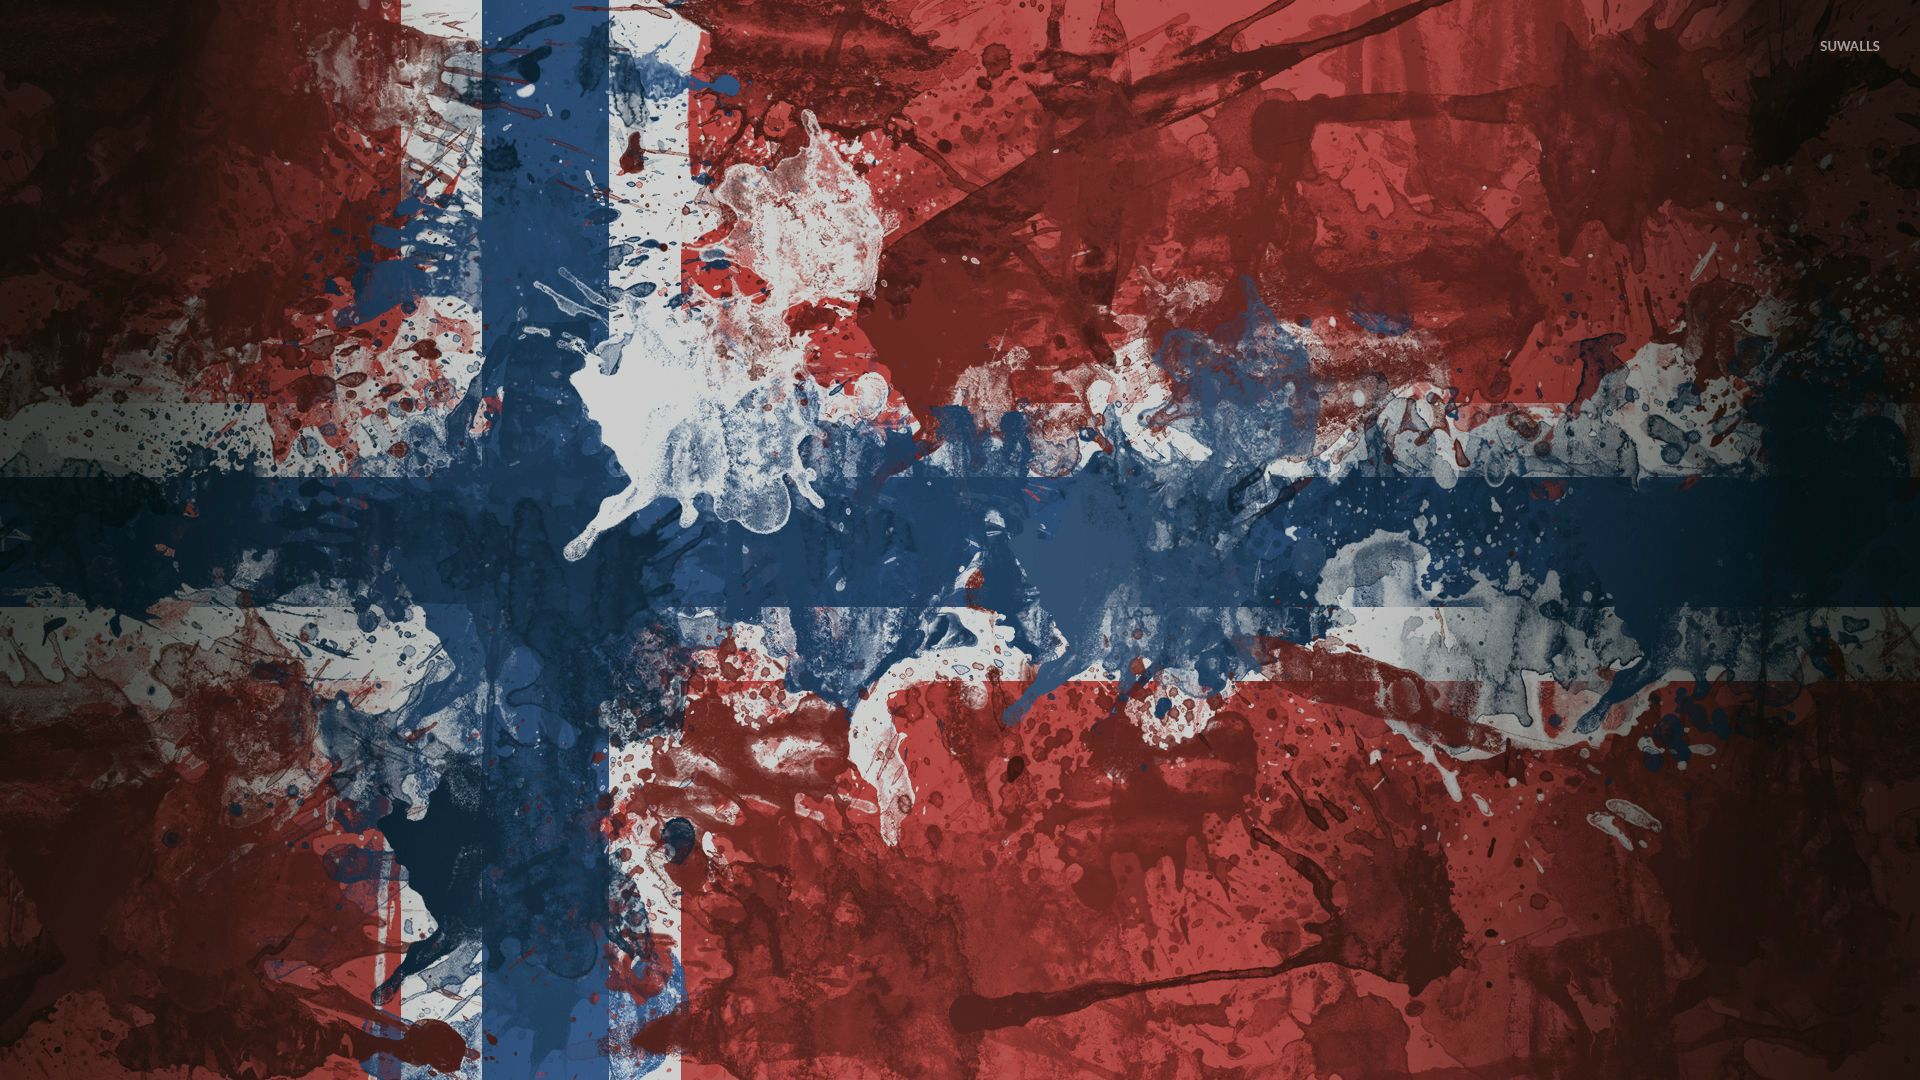 1920x1080 Norway flag with paint drops wallpaper - Digital Art wallpapers - #52584